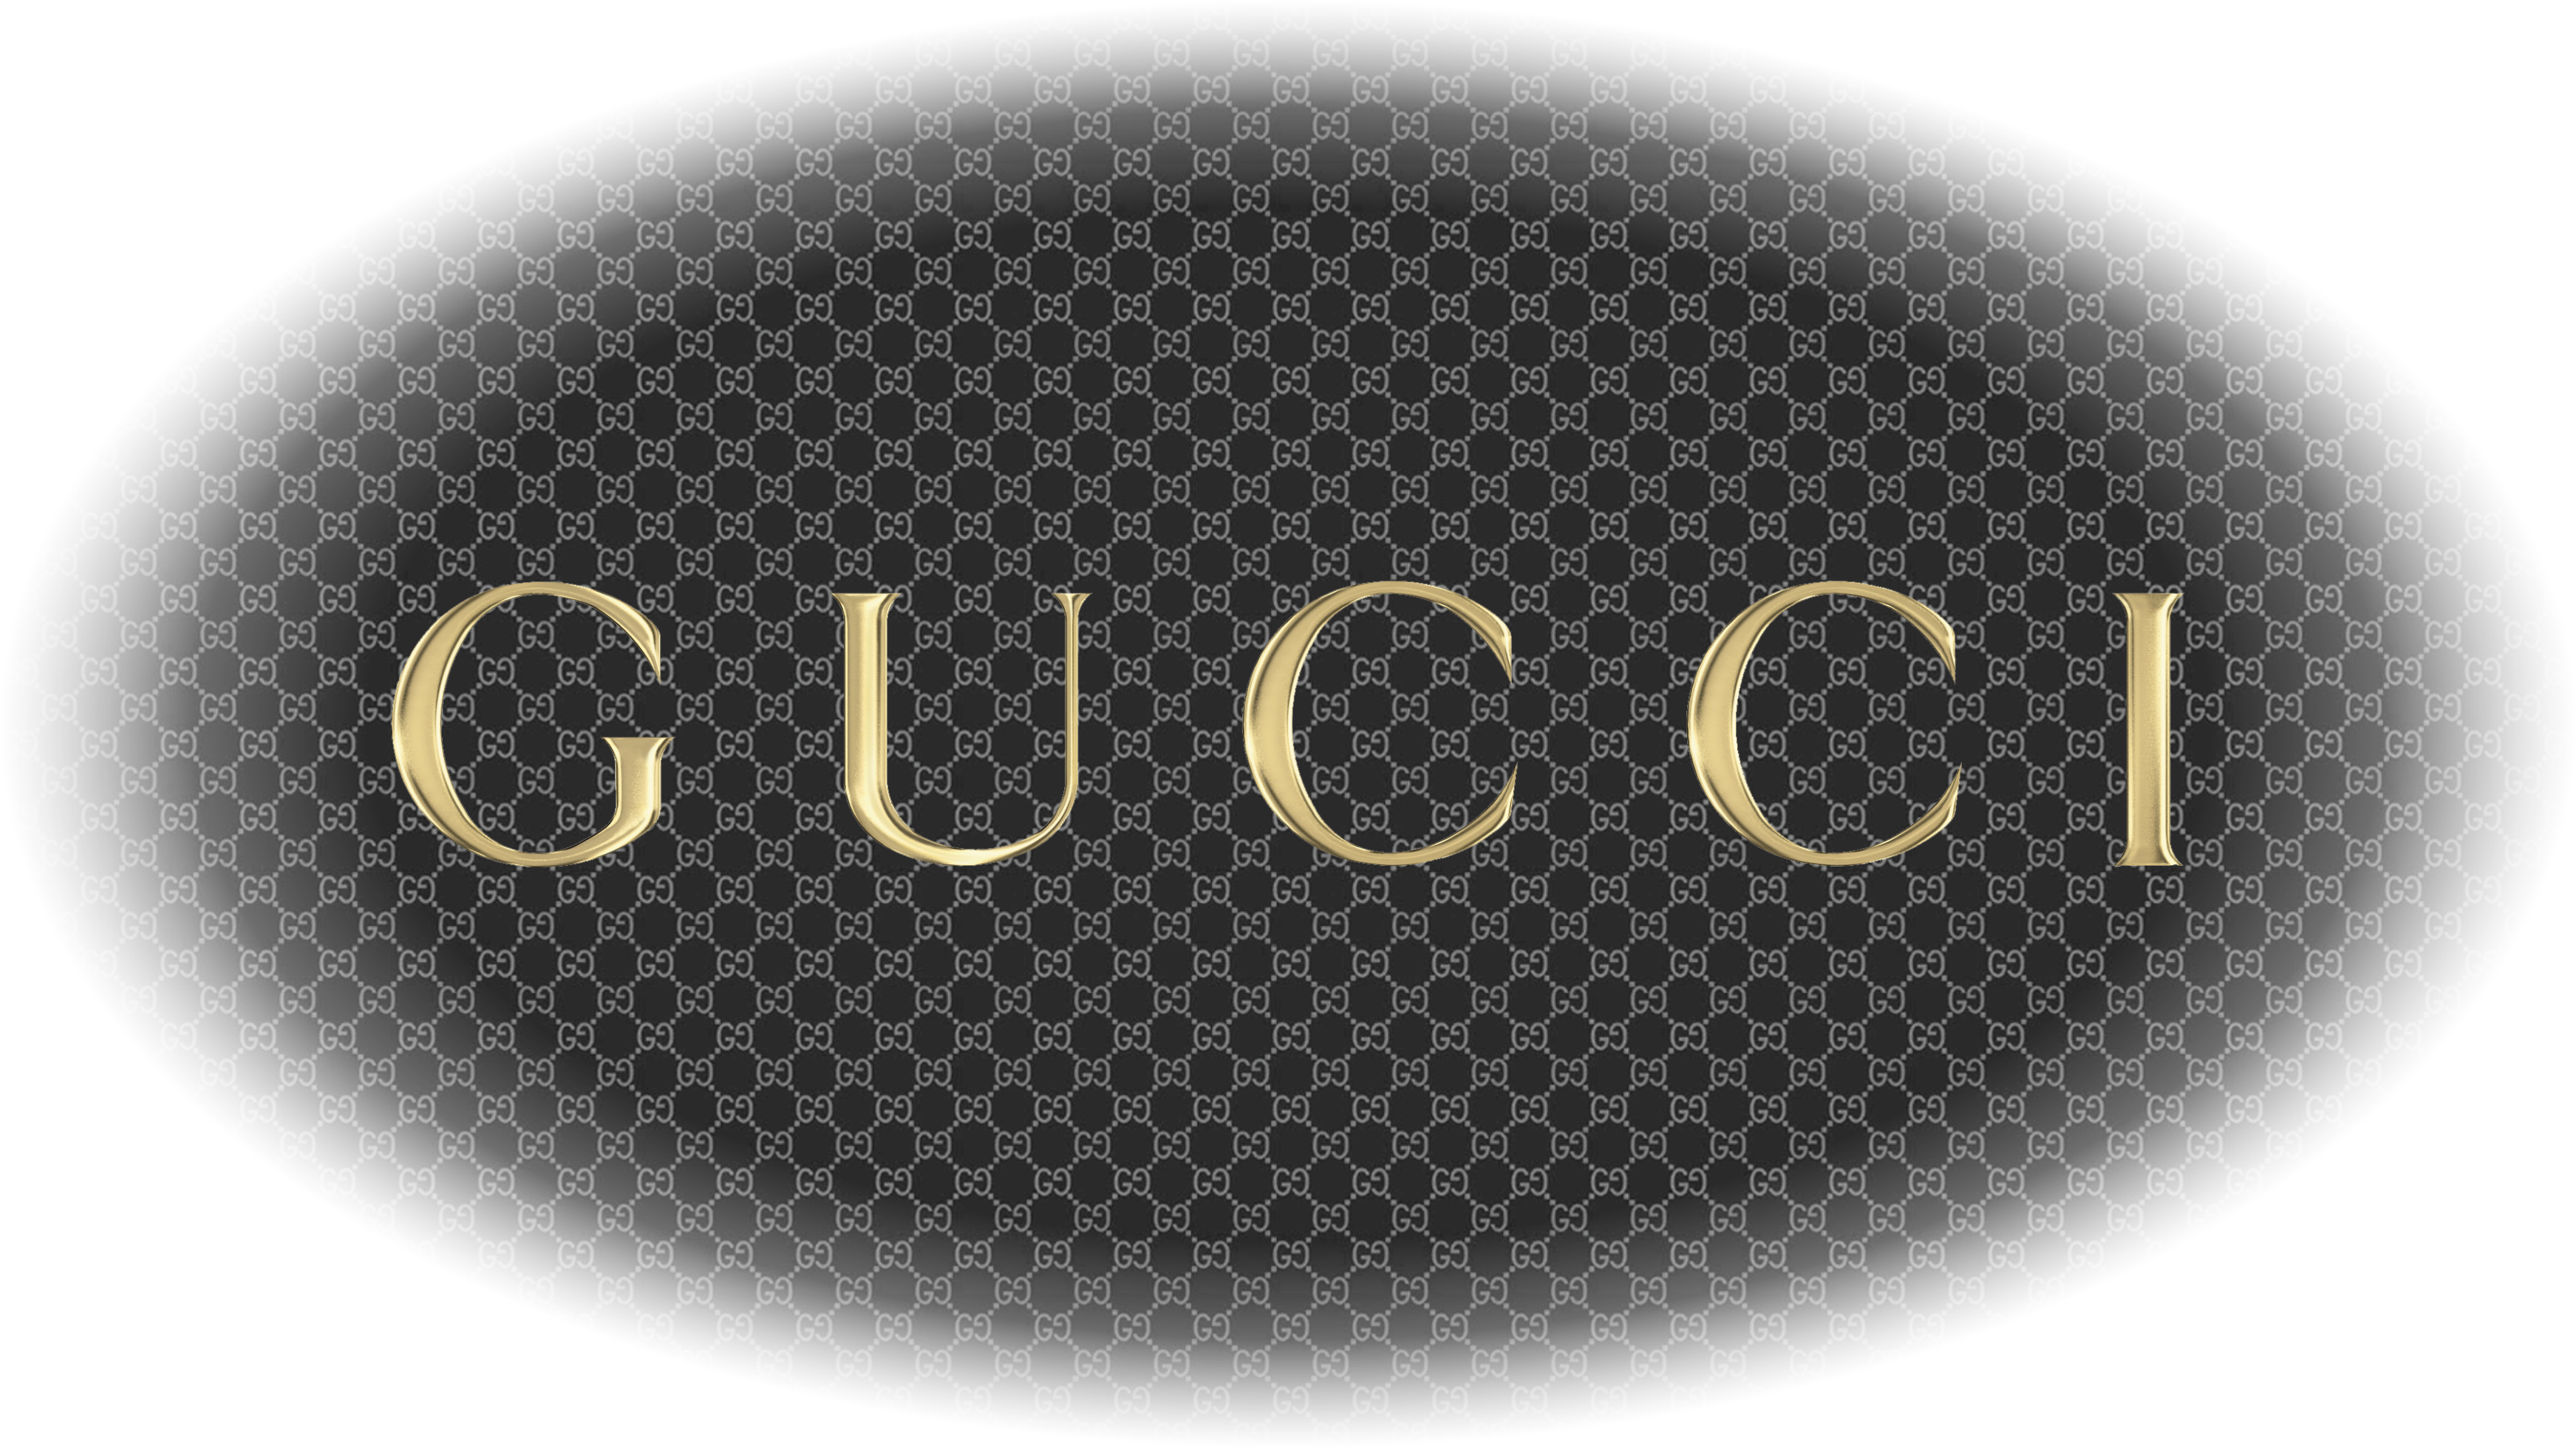 Gucci Logo Wallpapers HD 3486x1960